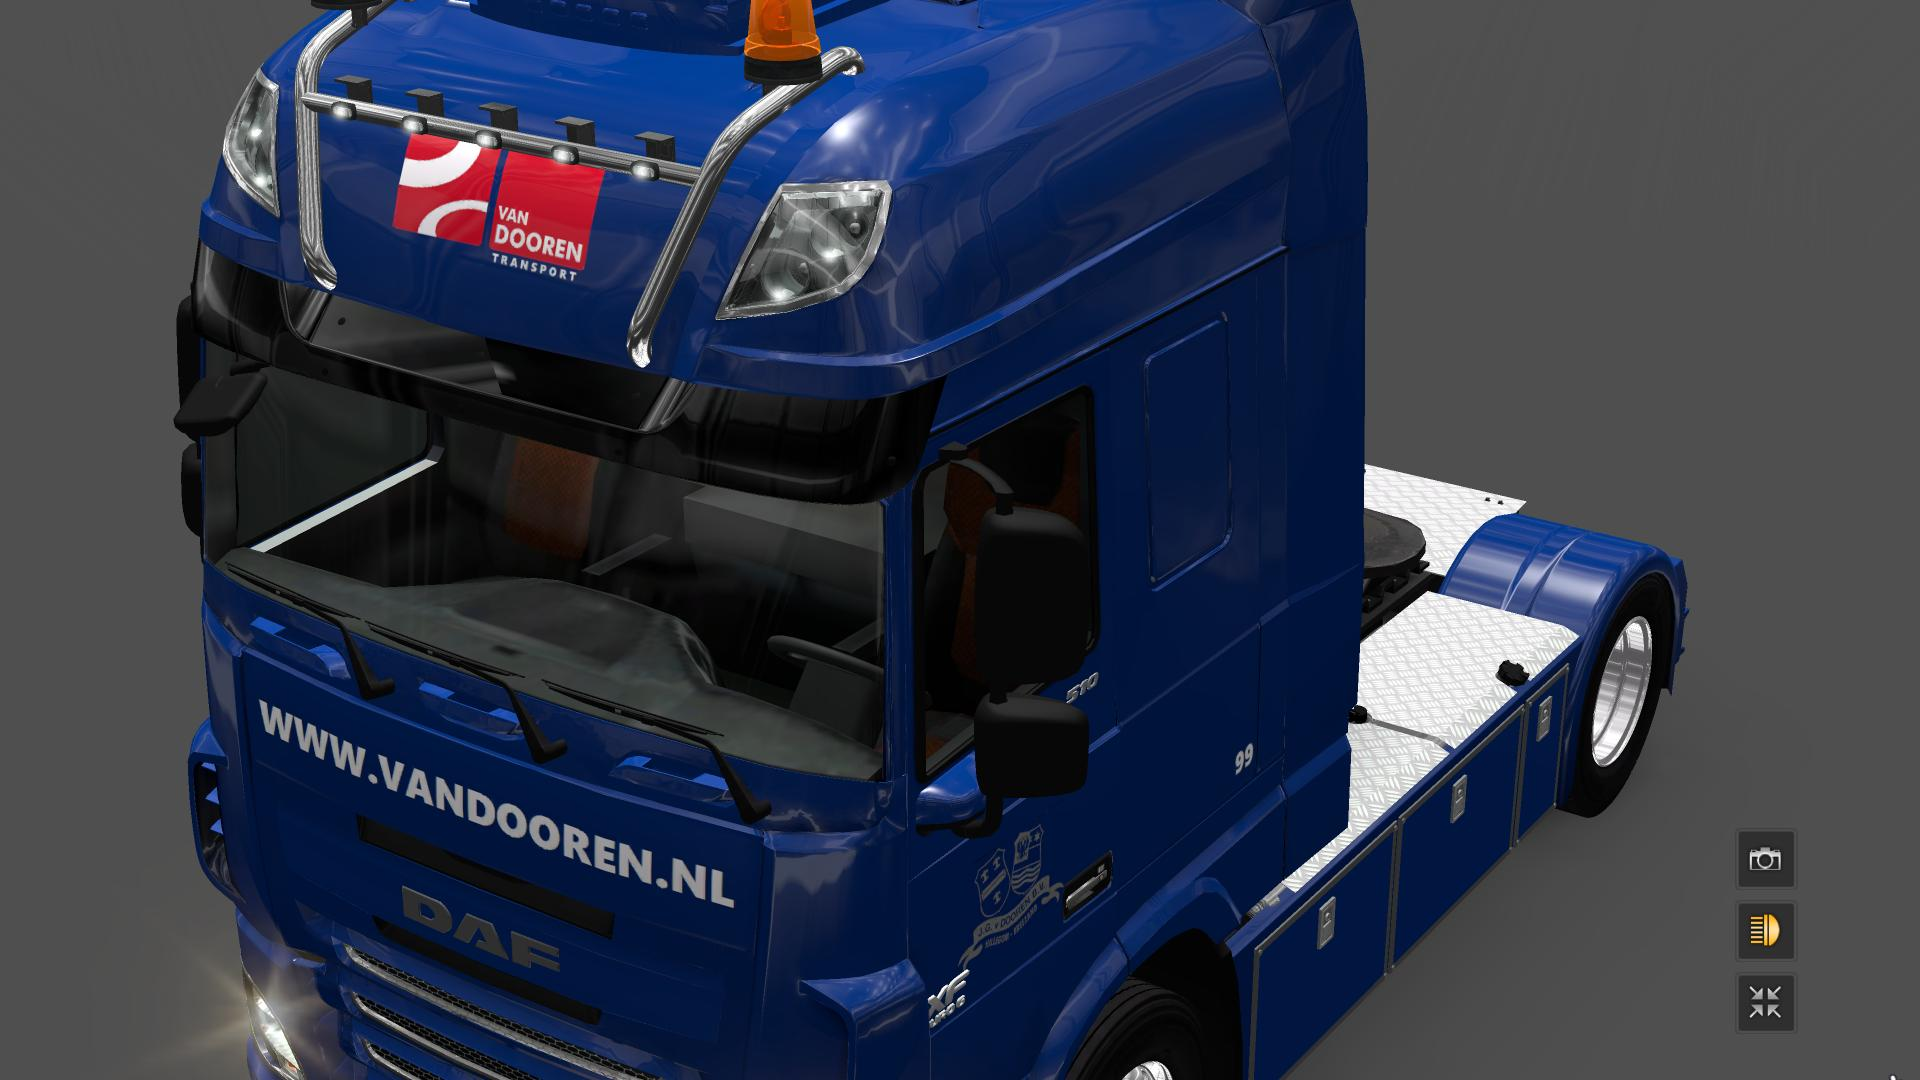 van-dooren-transport-pack-1-20-x_12